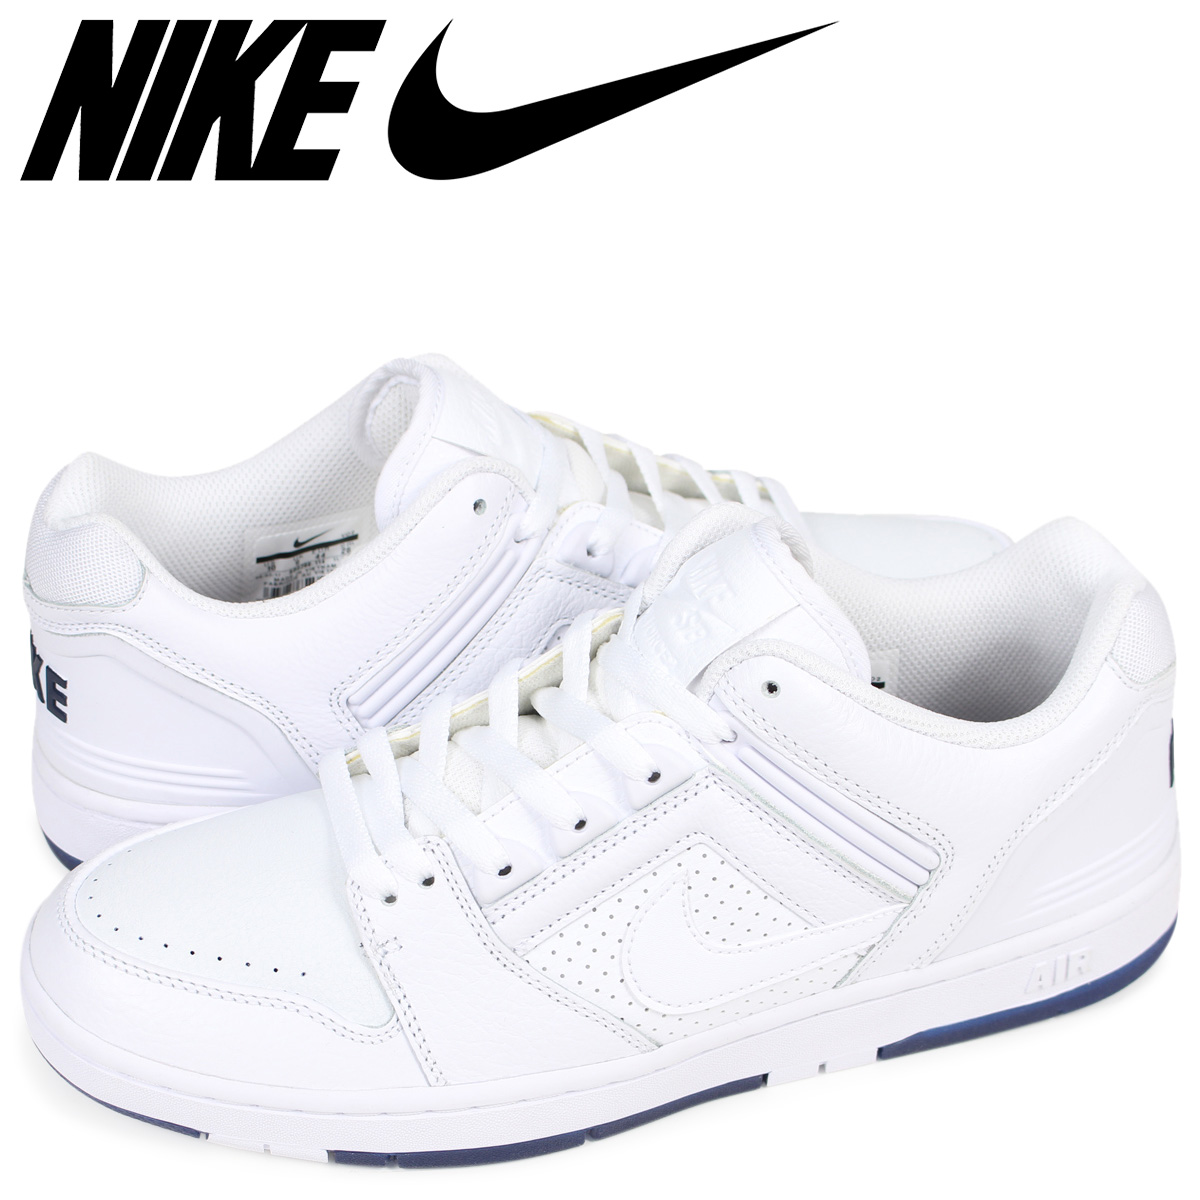 NIKE AIR FORCE 2 LOW KEVIN BRADLEY Nike SB air force 2 sneakers men white AO0298 114